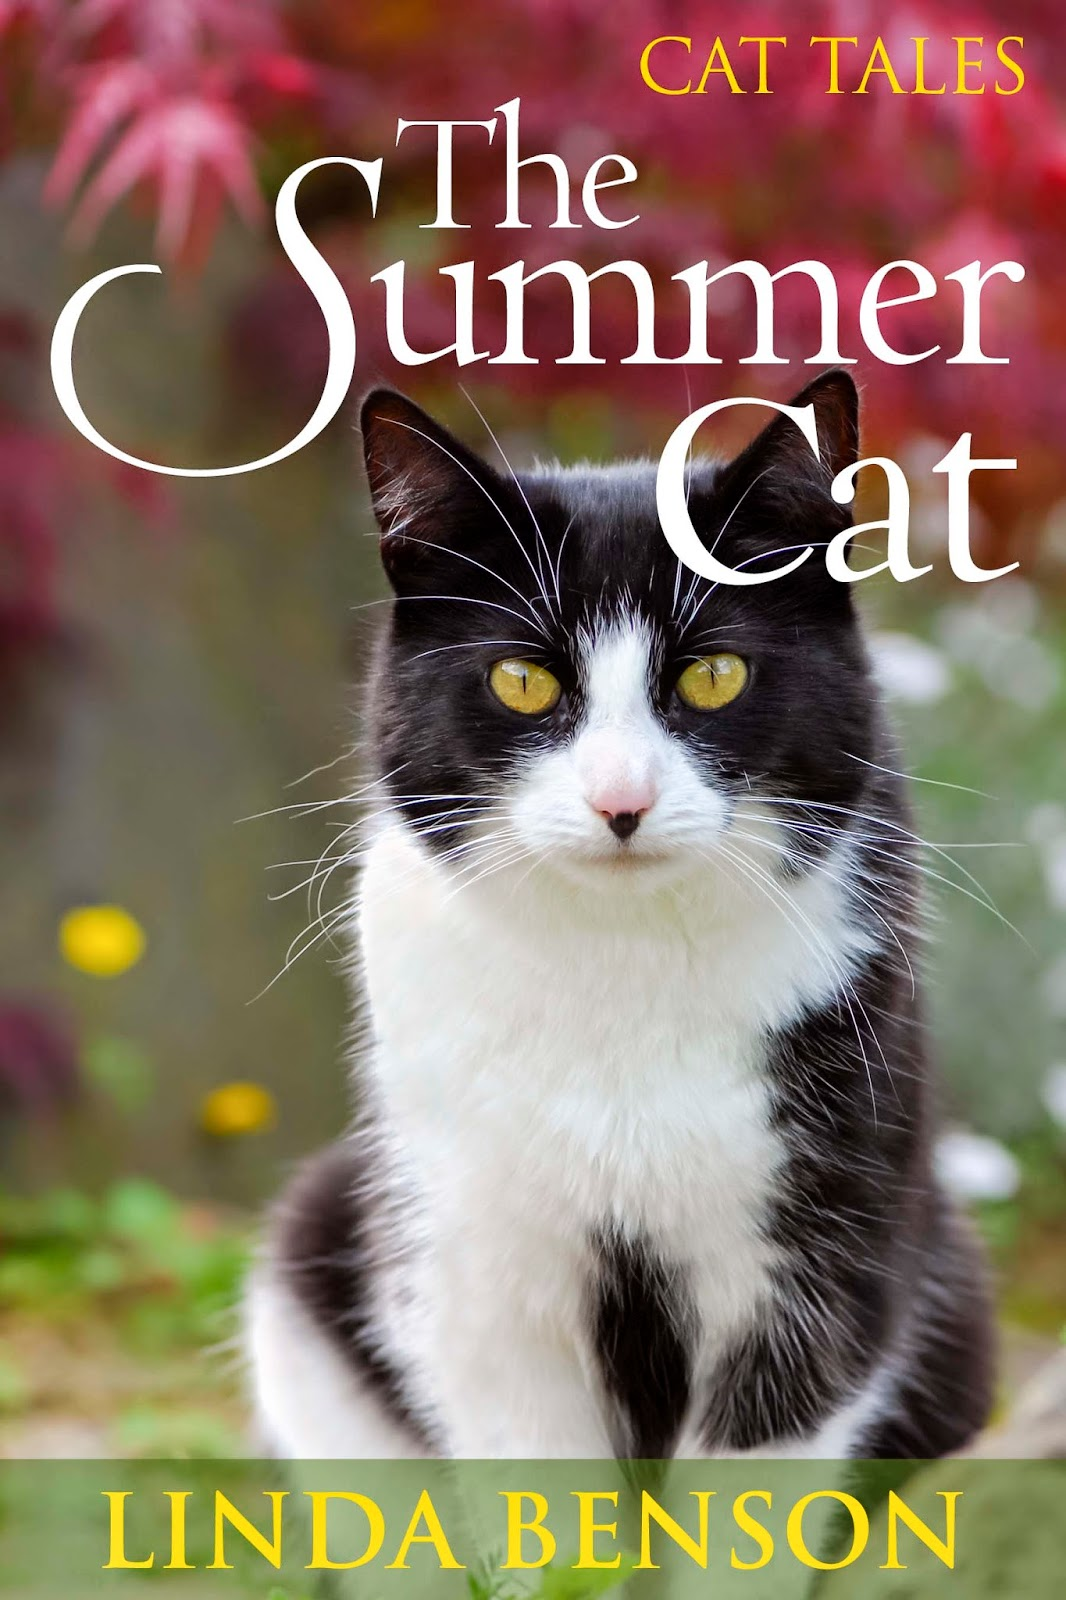 http://www.amazon.com/Summer-Cat-Tales-ebook/dp/B00KRPZLVQ